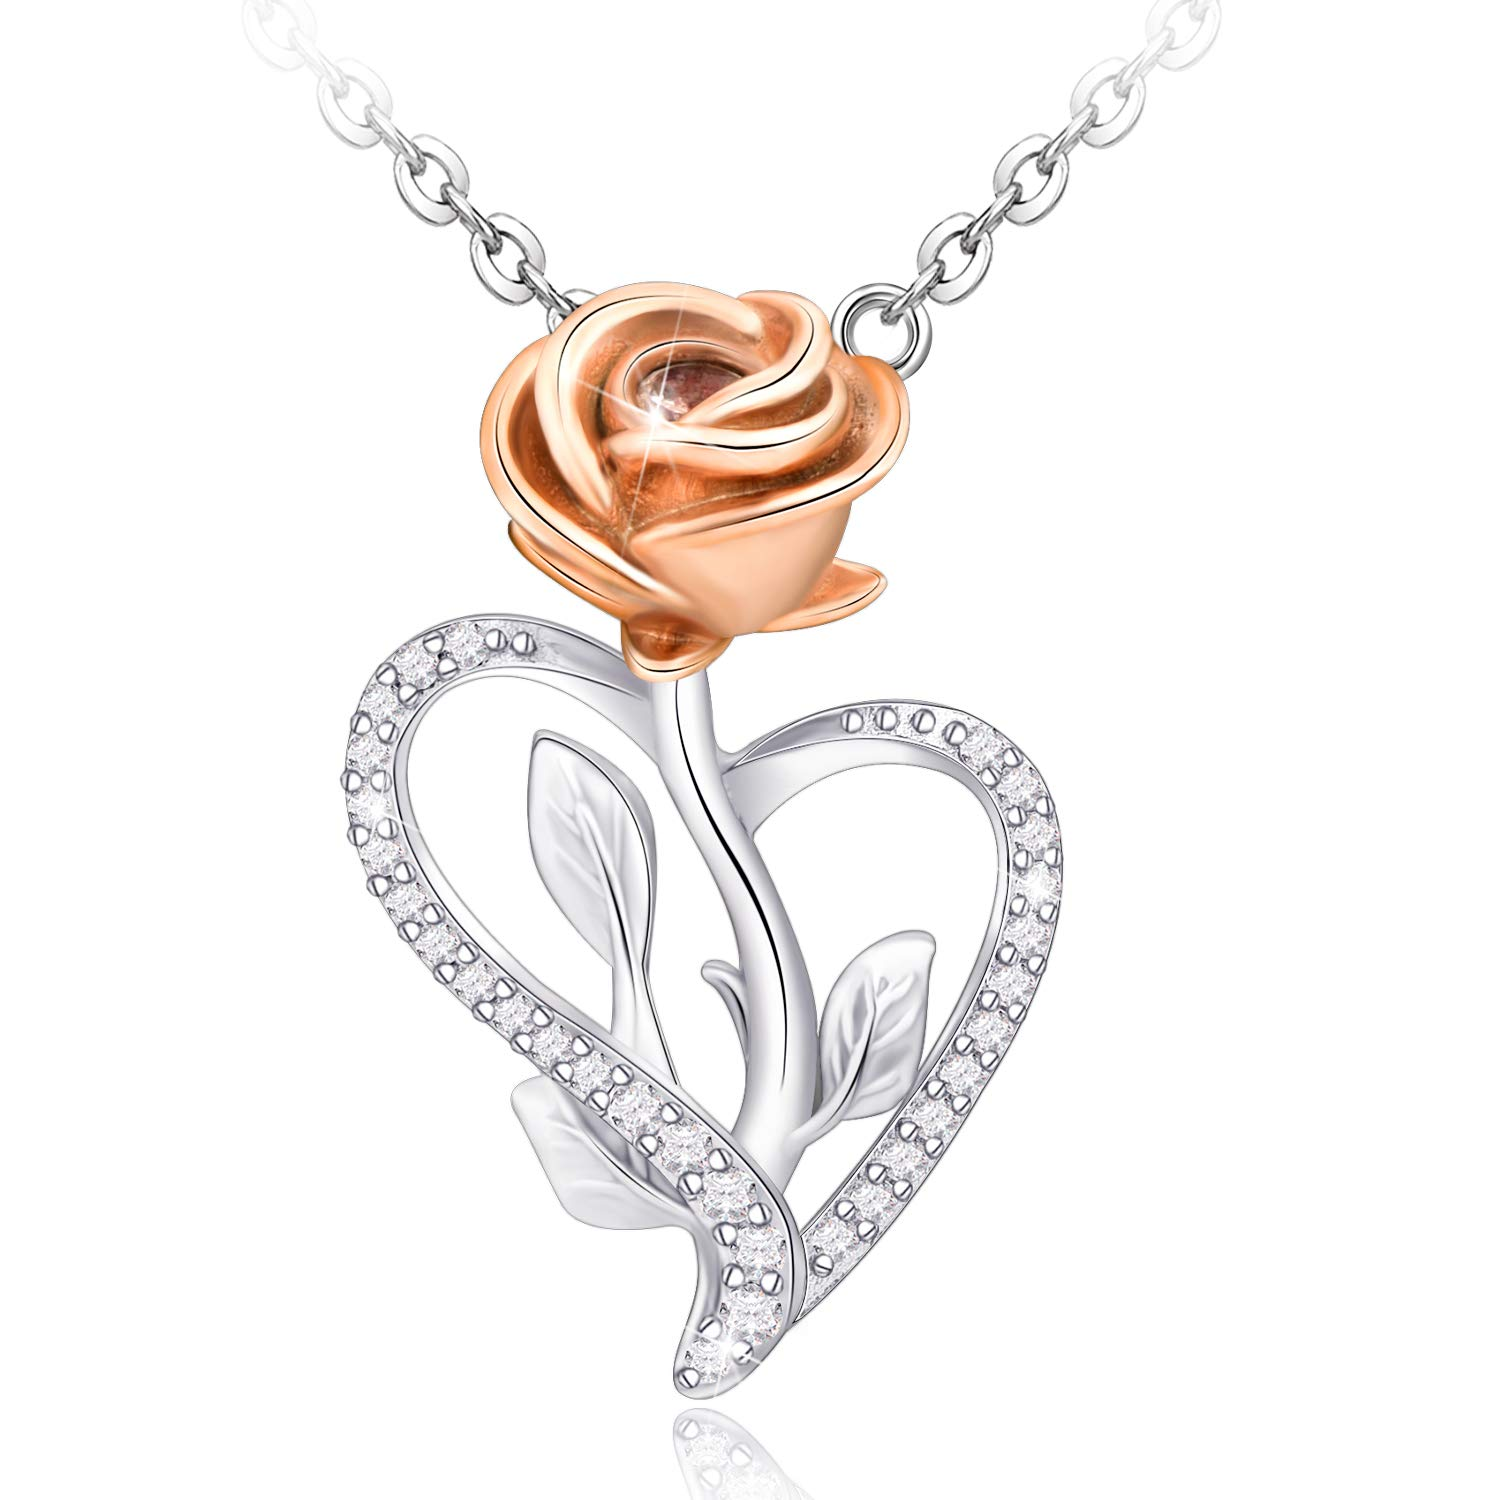 Distance Necklace for Women S925 Sterling Silver Rose Flower Heart Necklace Jewelry Gifts for Women Mom Wife